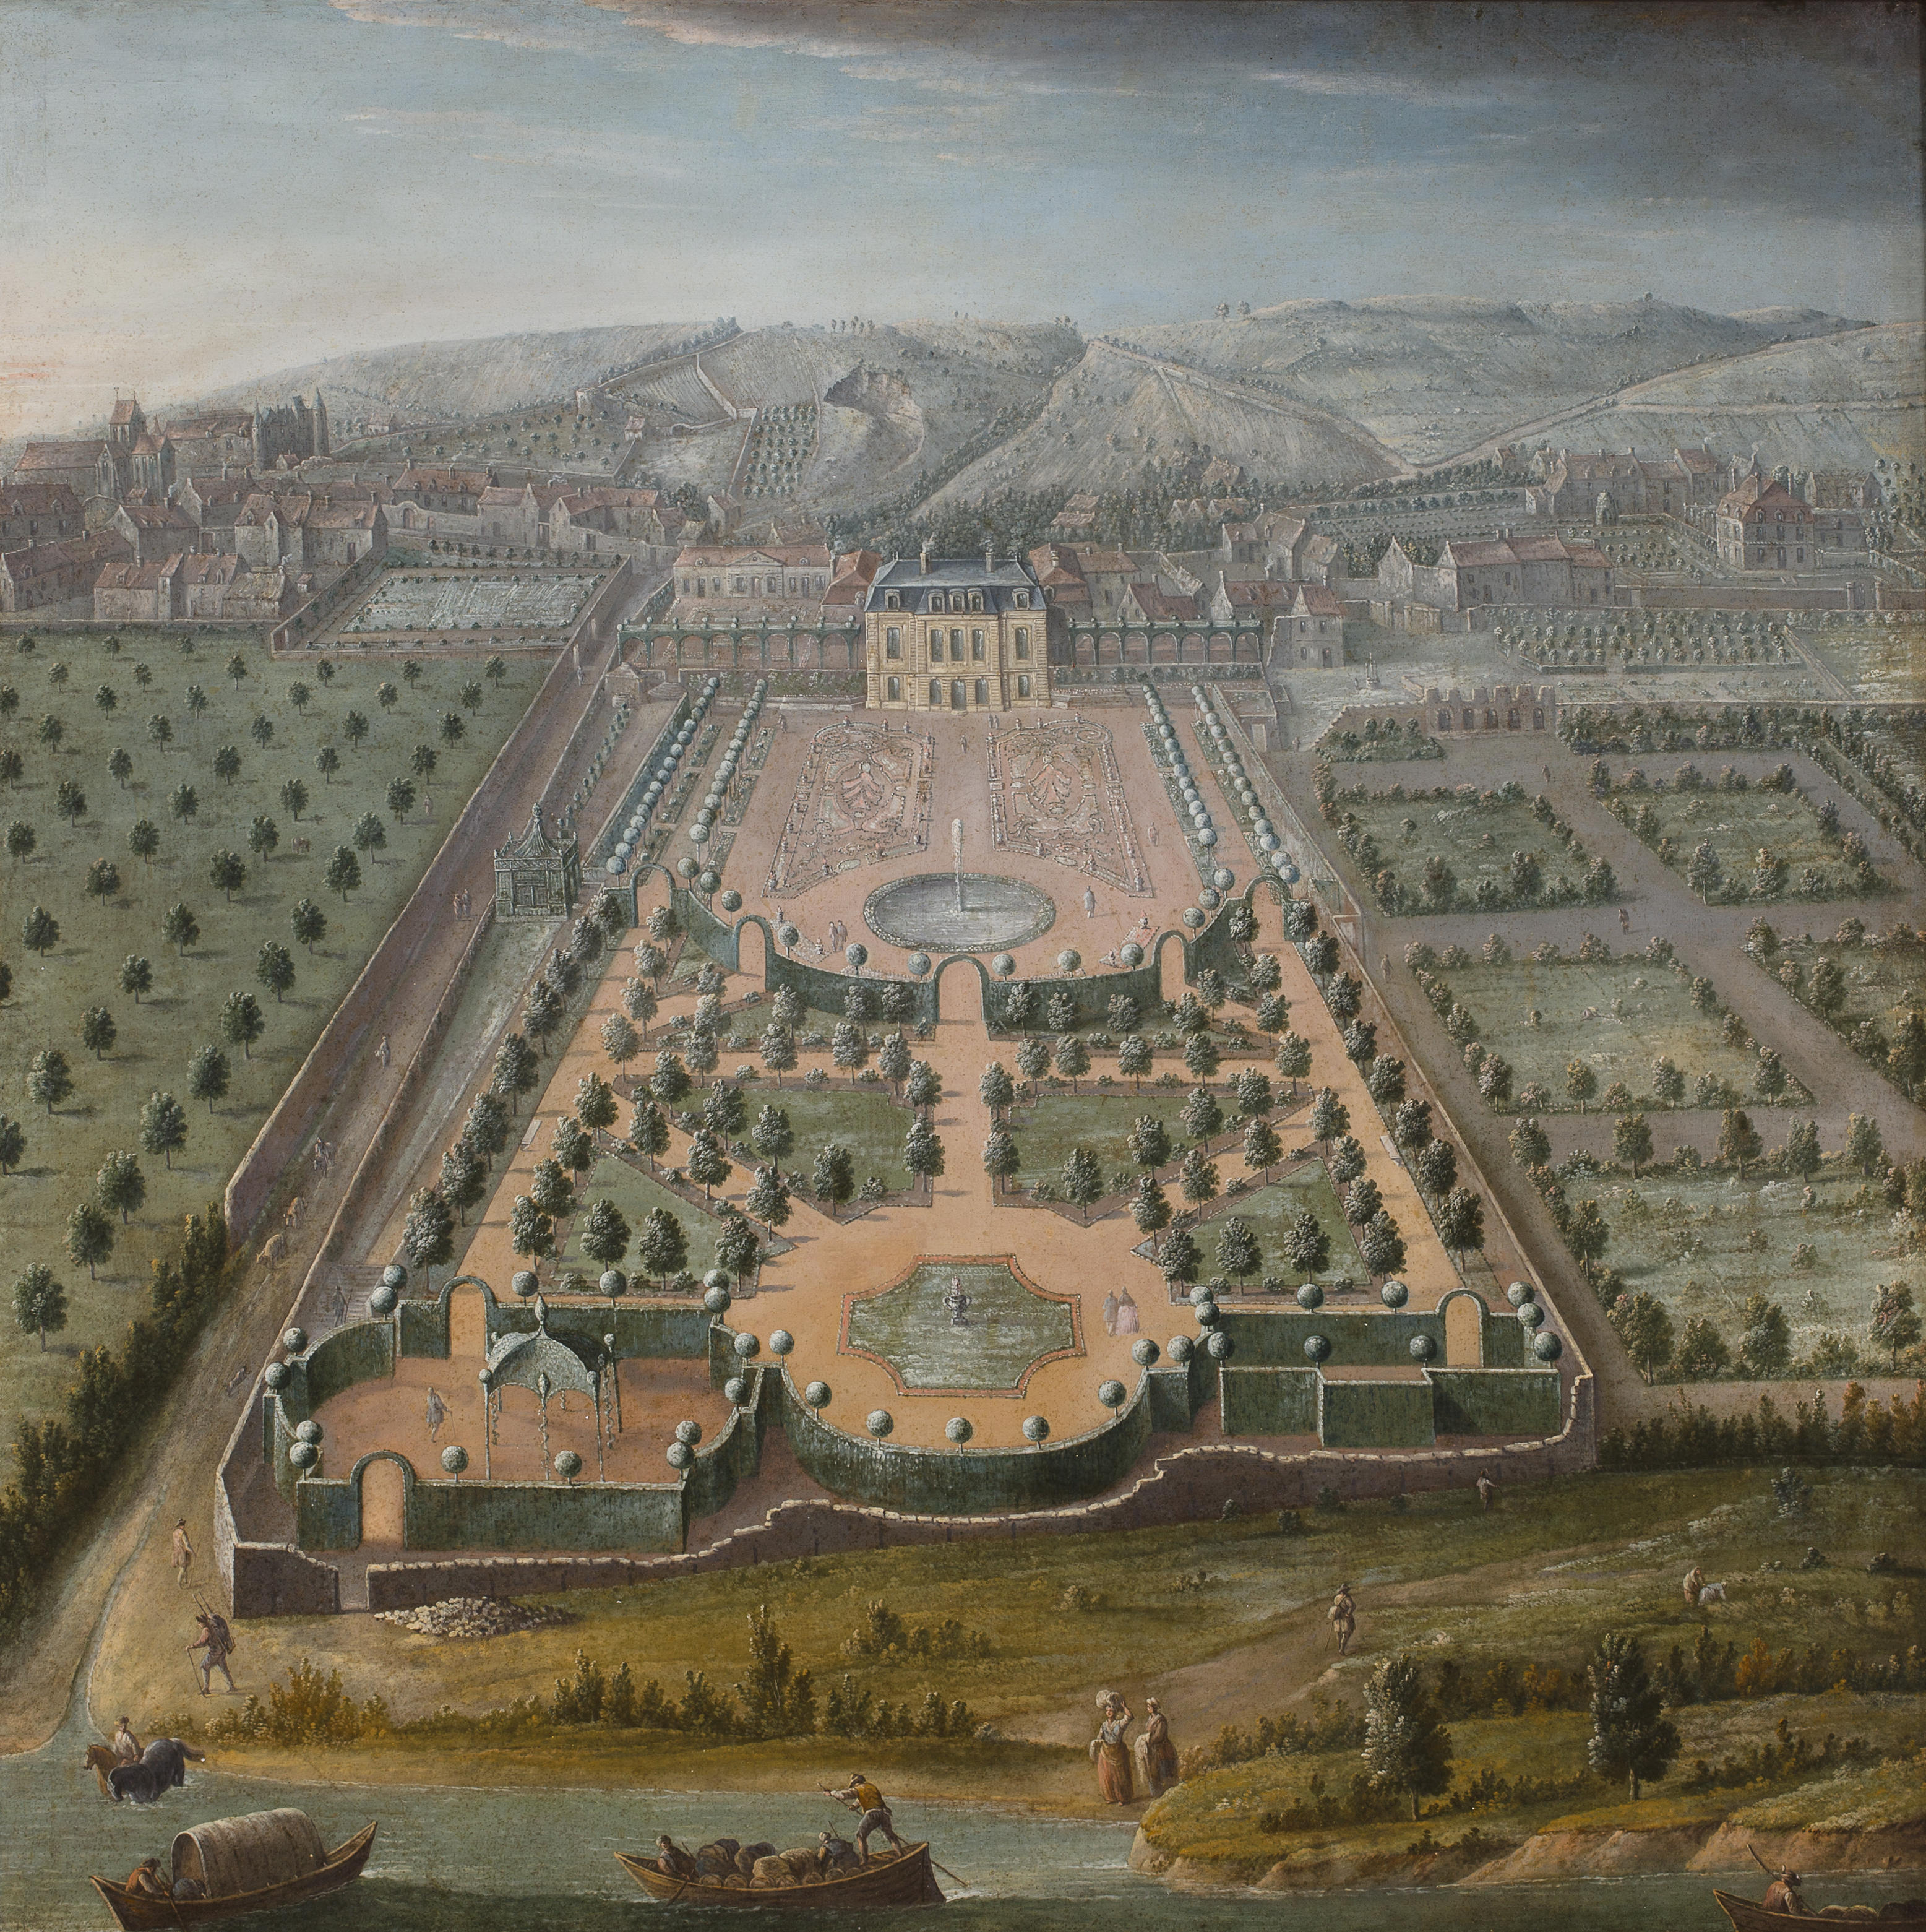 A_French_estate_18th_century_park_view.jpg